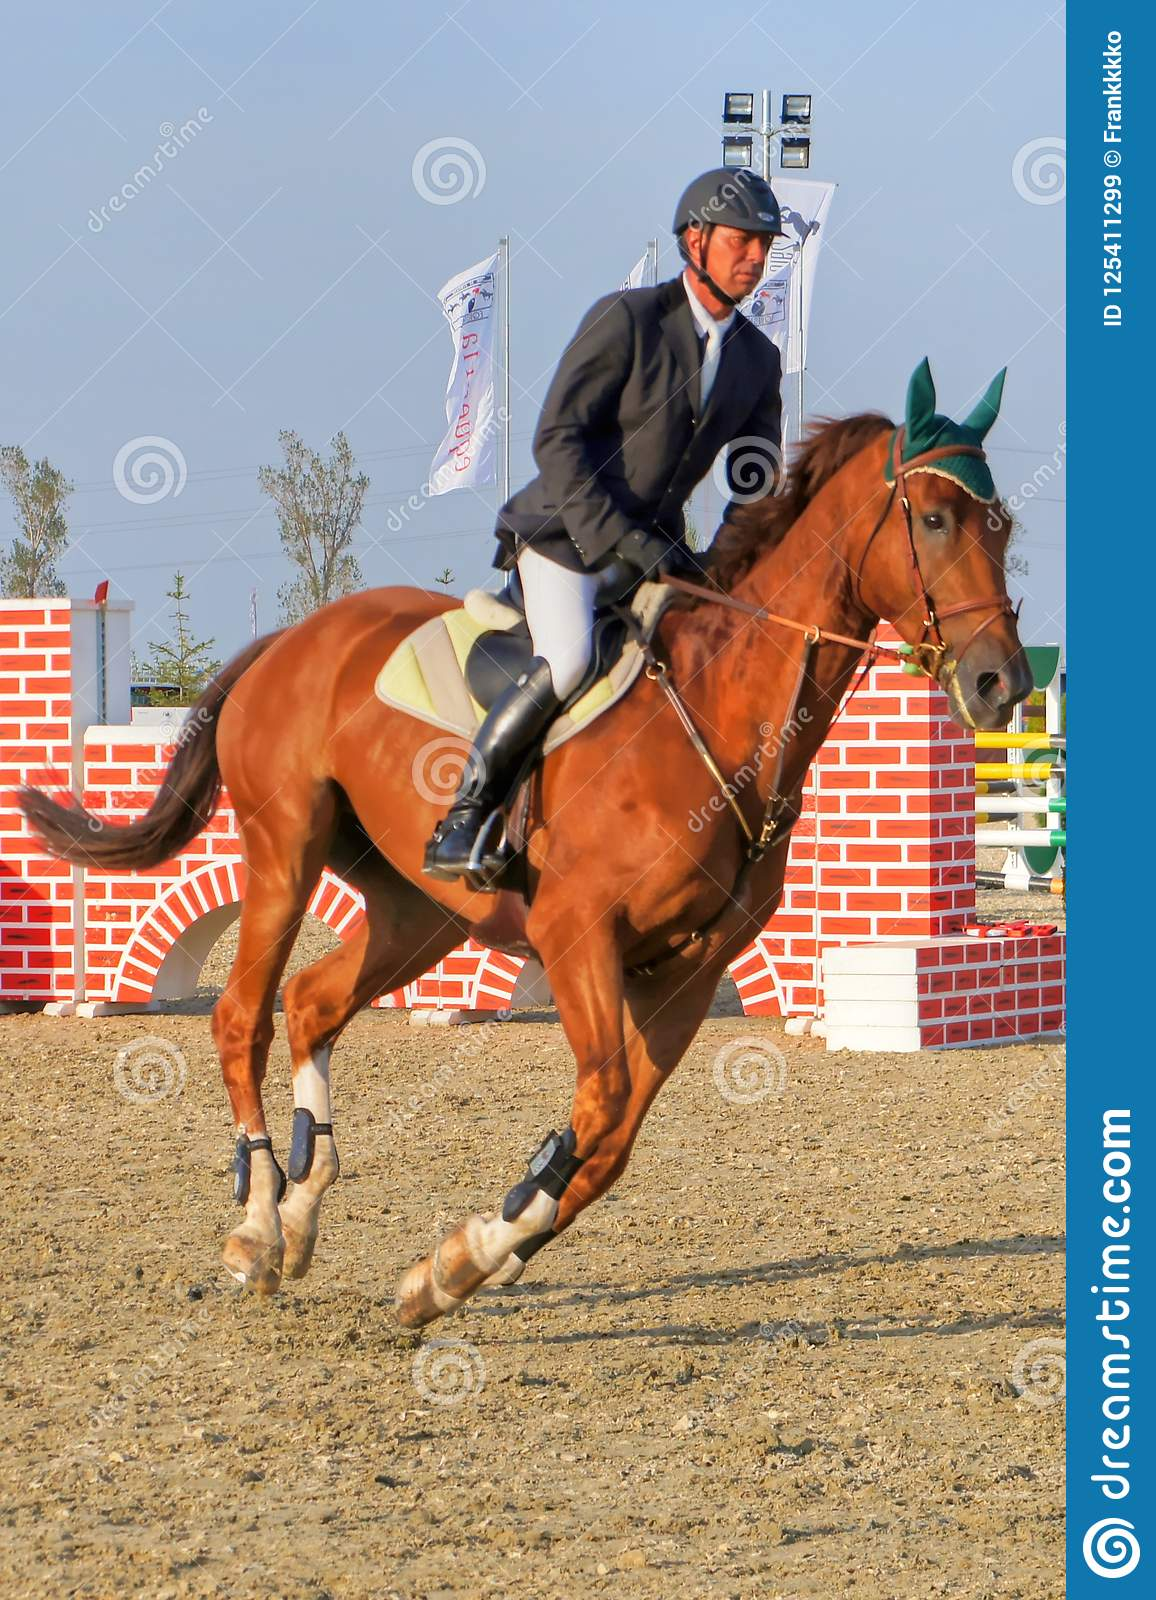 Jockey Horseback Riding On Purebred Red Horse Vertical Editorial Stock Image Image Of Equestrian Competition 125411299